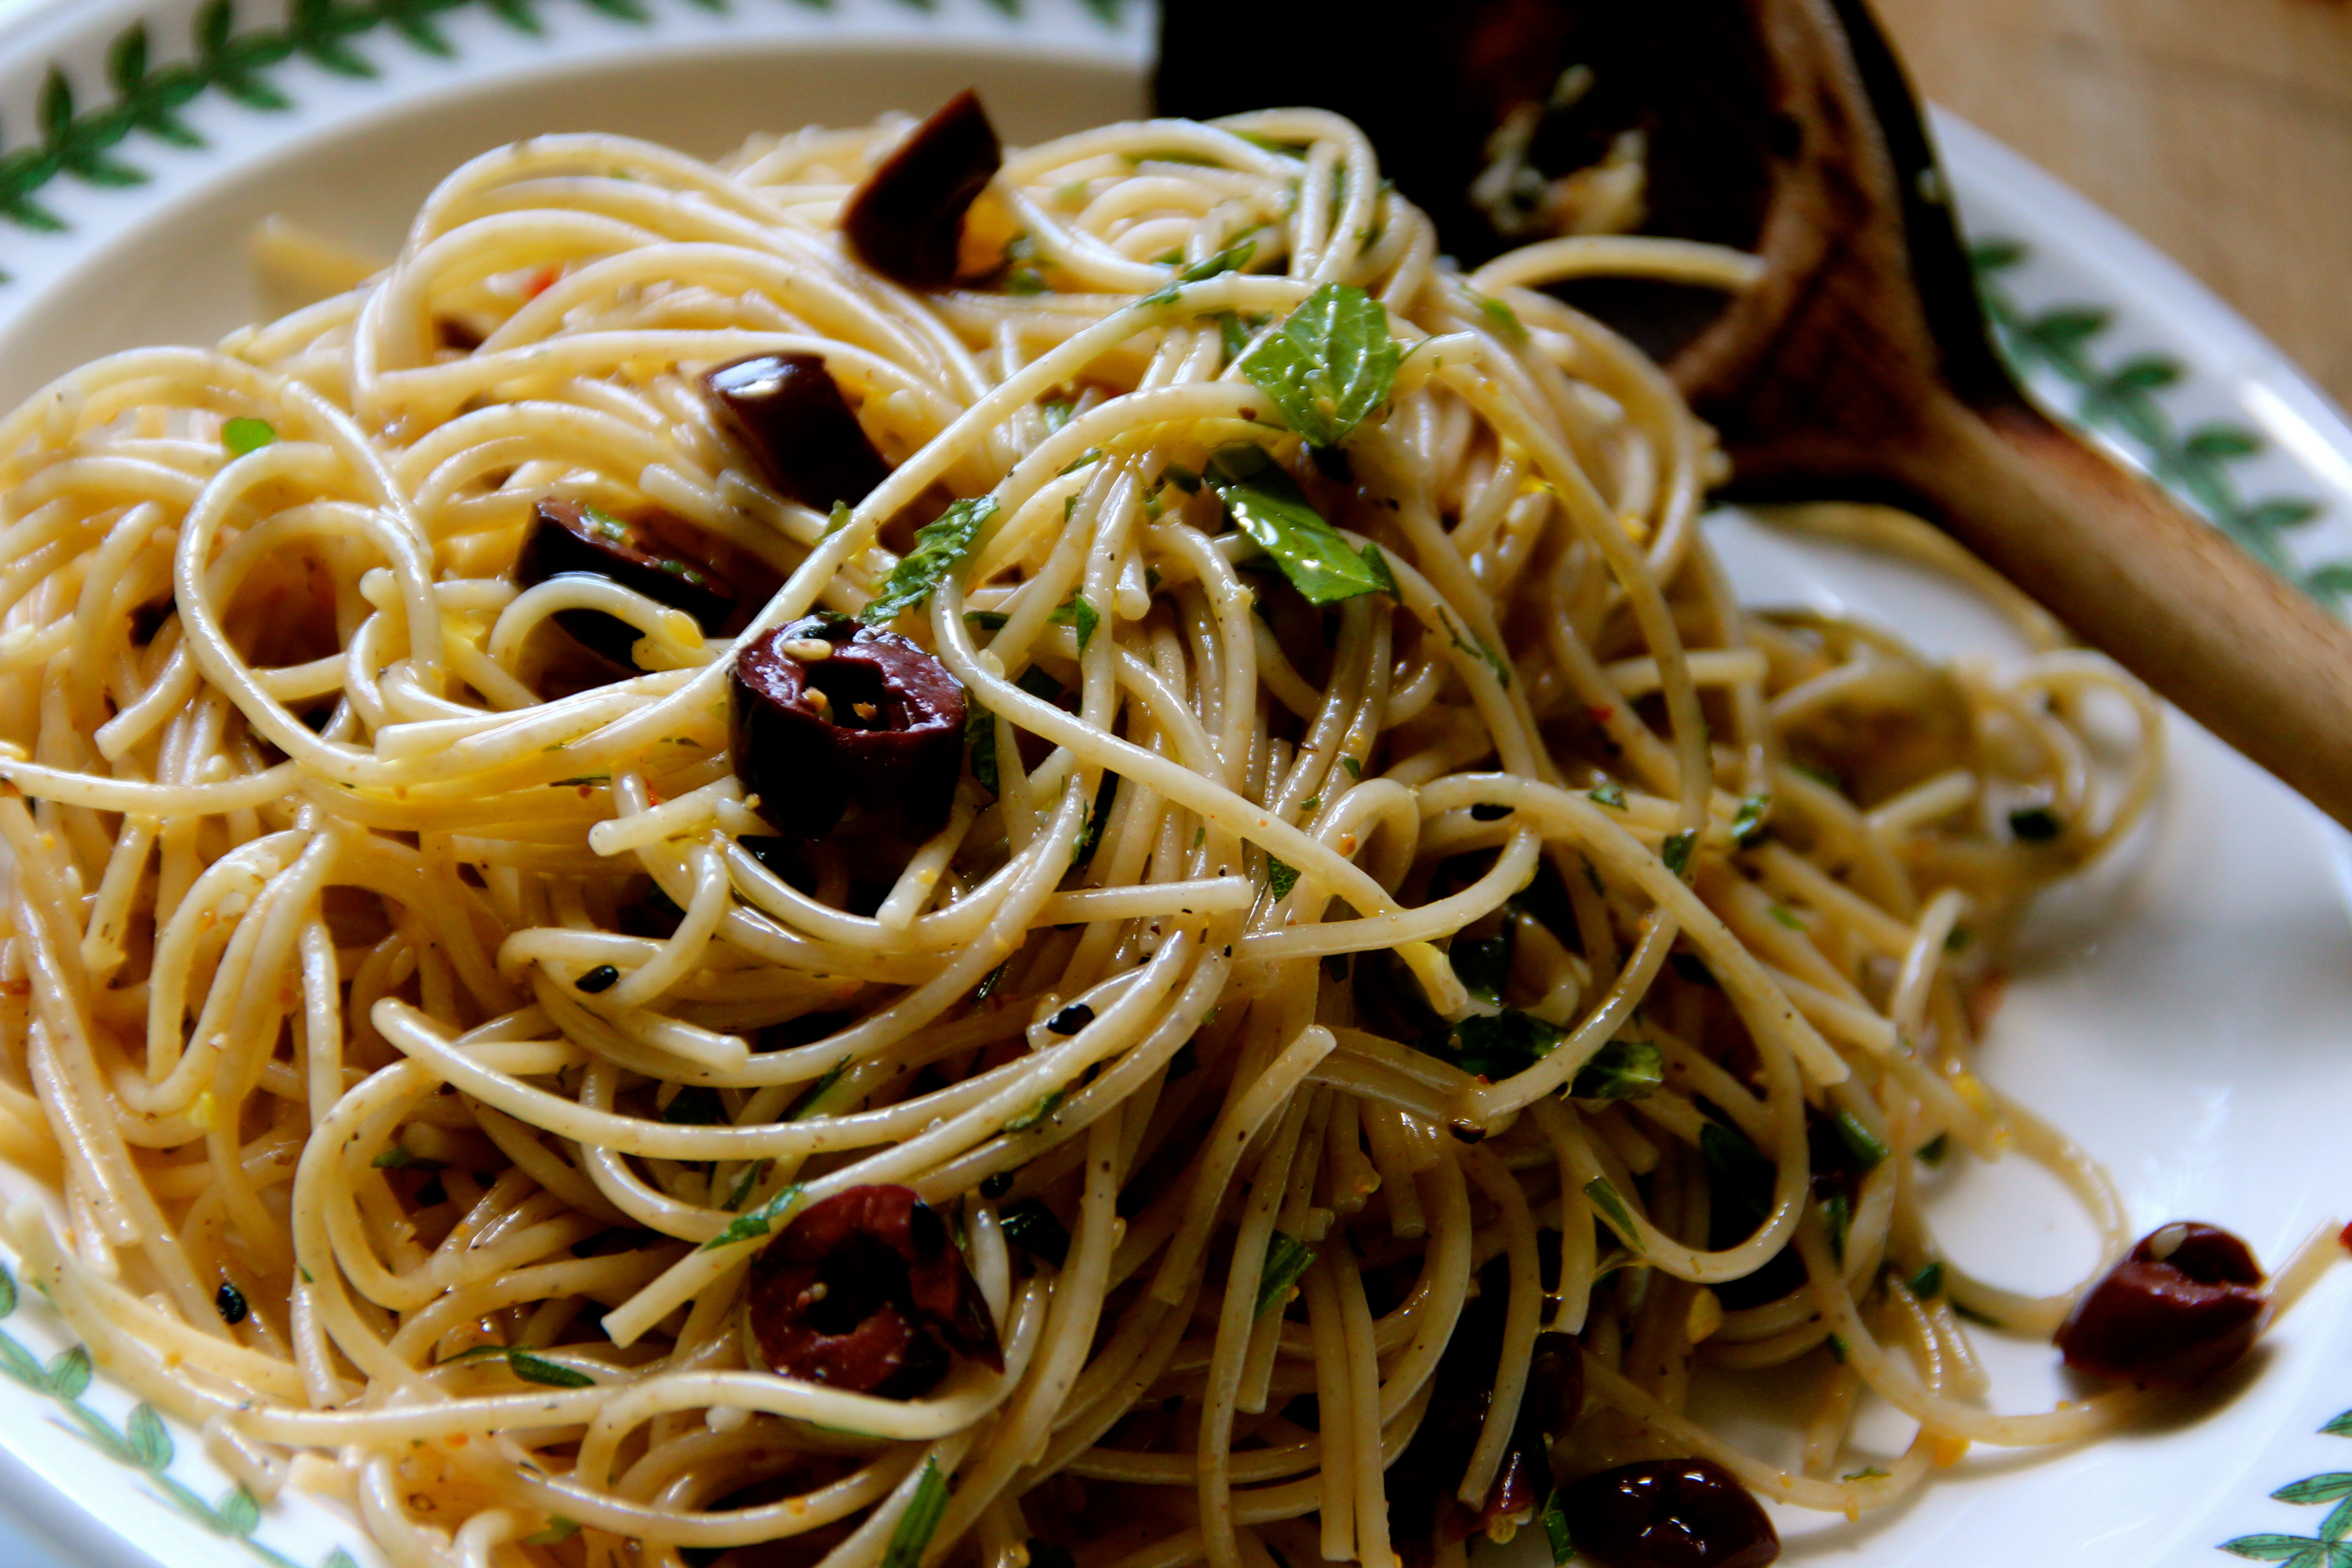 Pasta, truffle oil, french ,olives, herbs, French cuisine, pasta